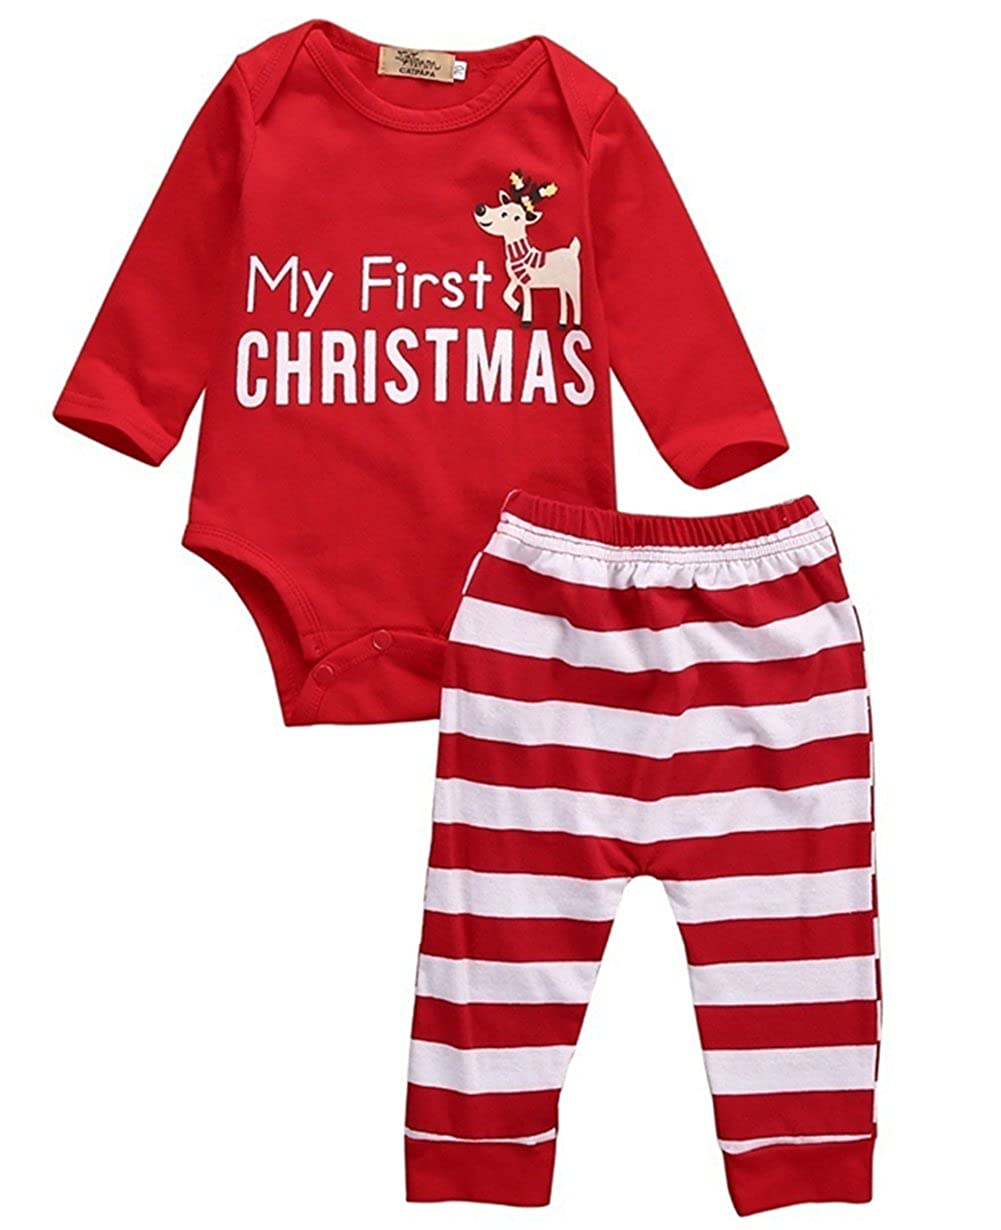 Chickwin 3Pcs My First Christmas Santa Clothes Set Toddler Newborn Infant Baby Boy Girl Deer Romper Tops+Pants+Hat Outfits